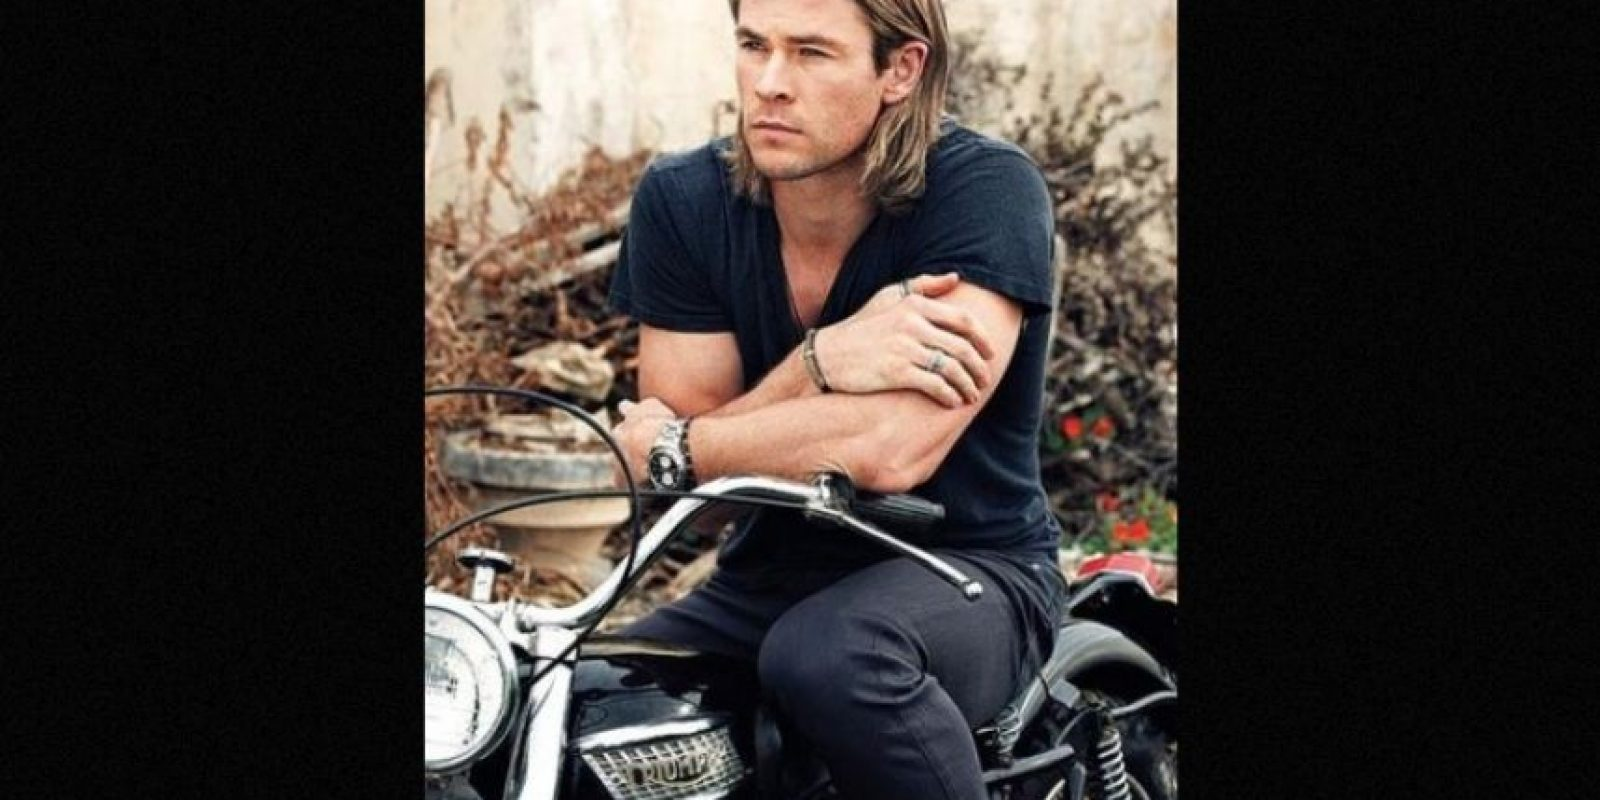 7. Chris Hemsworth es el mediano de tres hermanos. Foto: Facebook/ChrisHemsworth